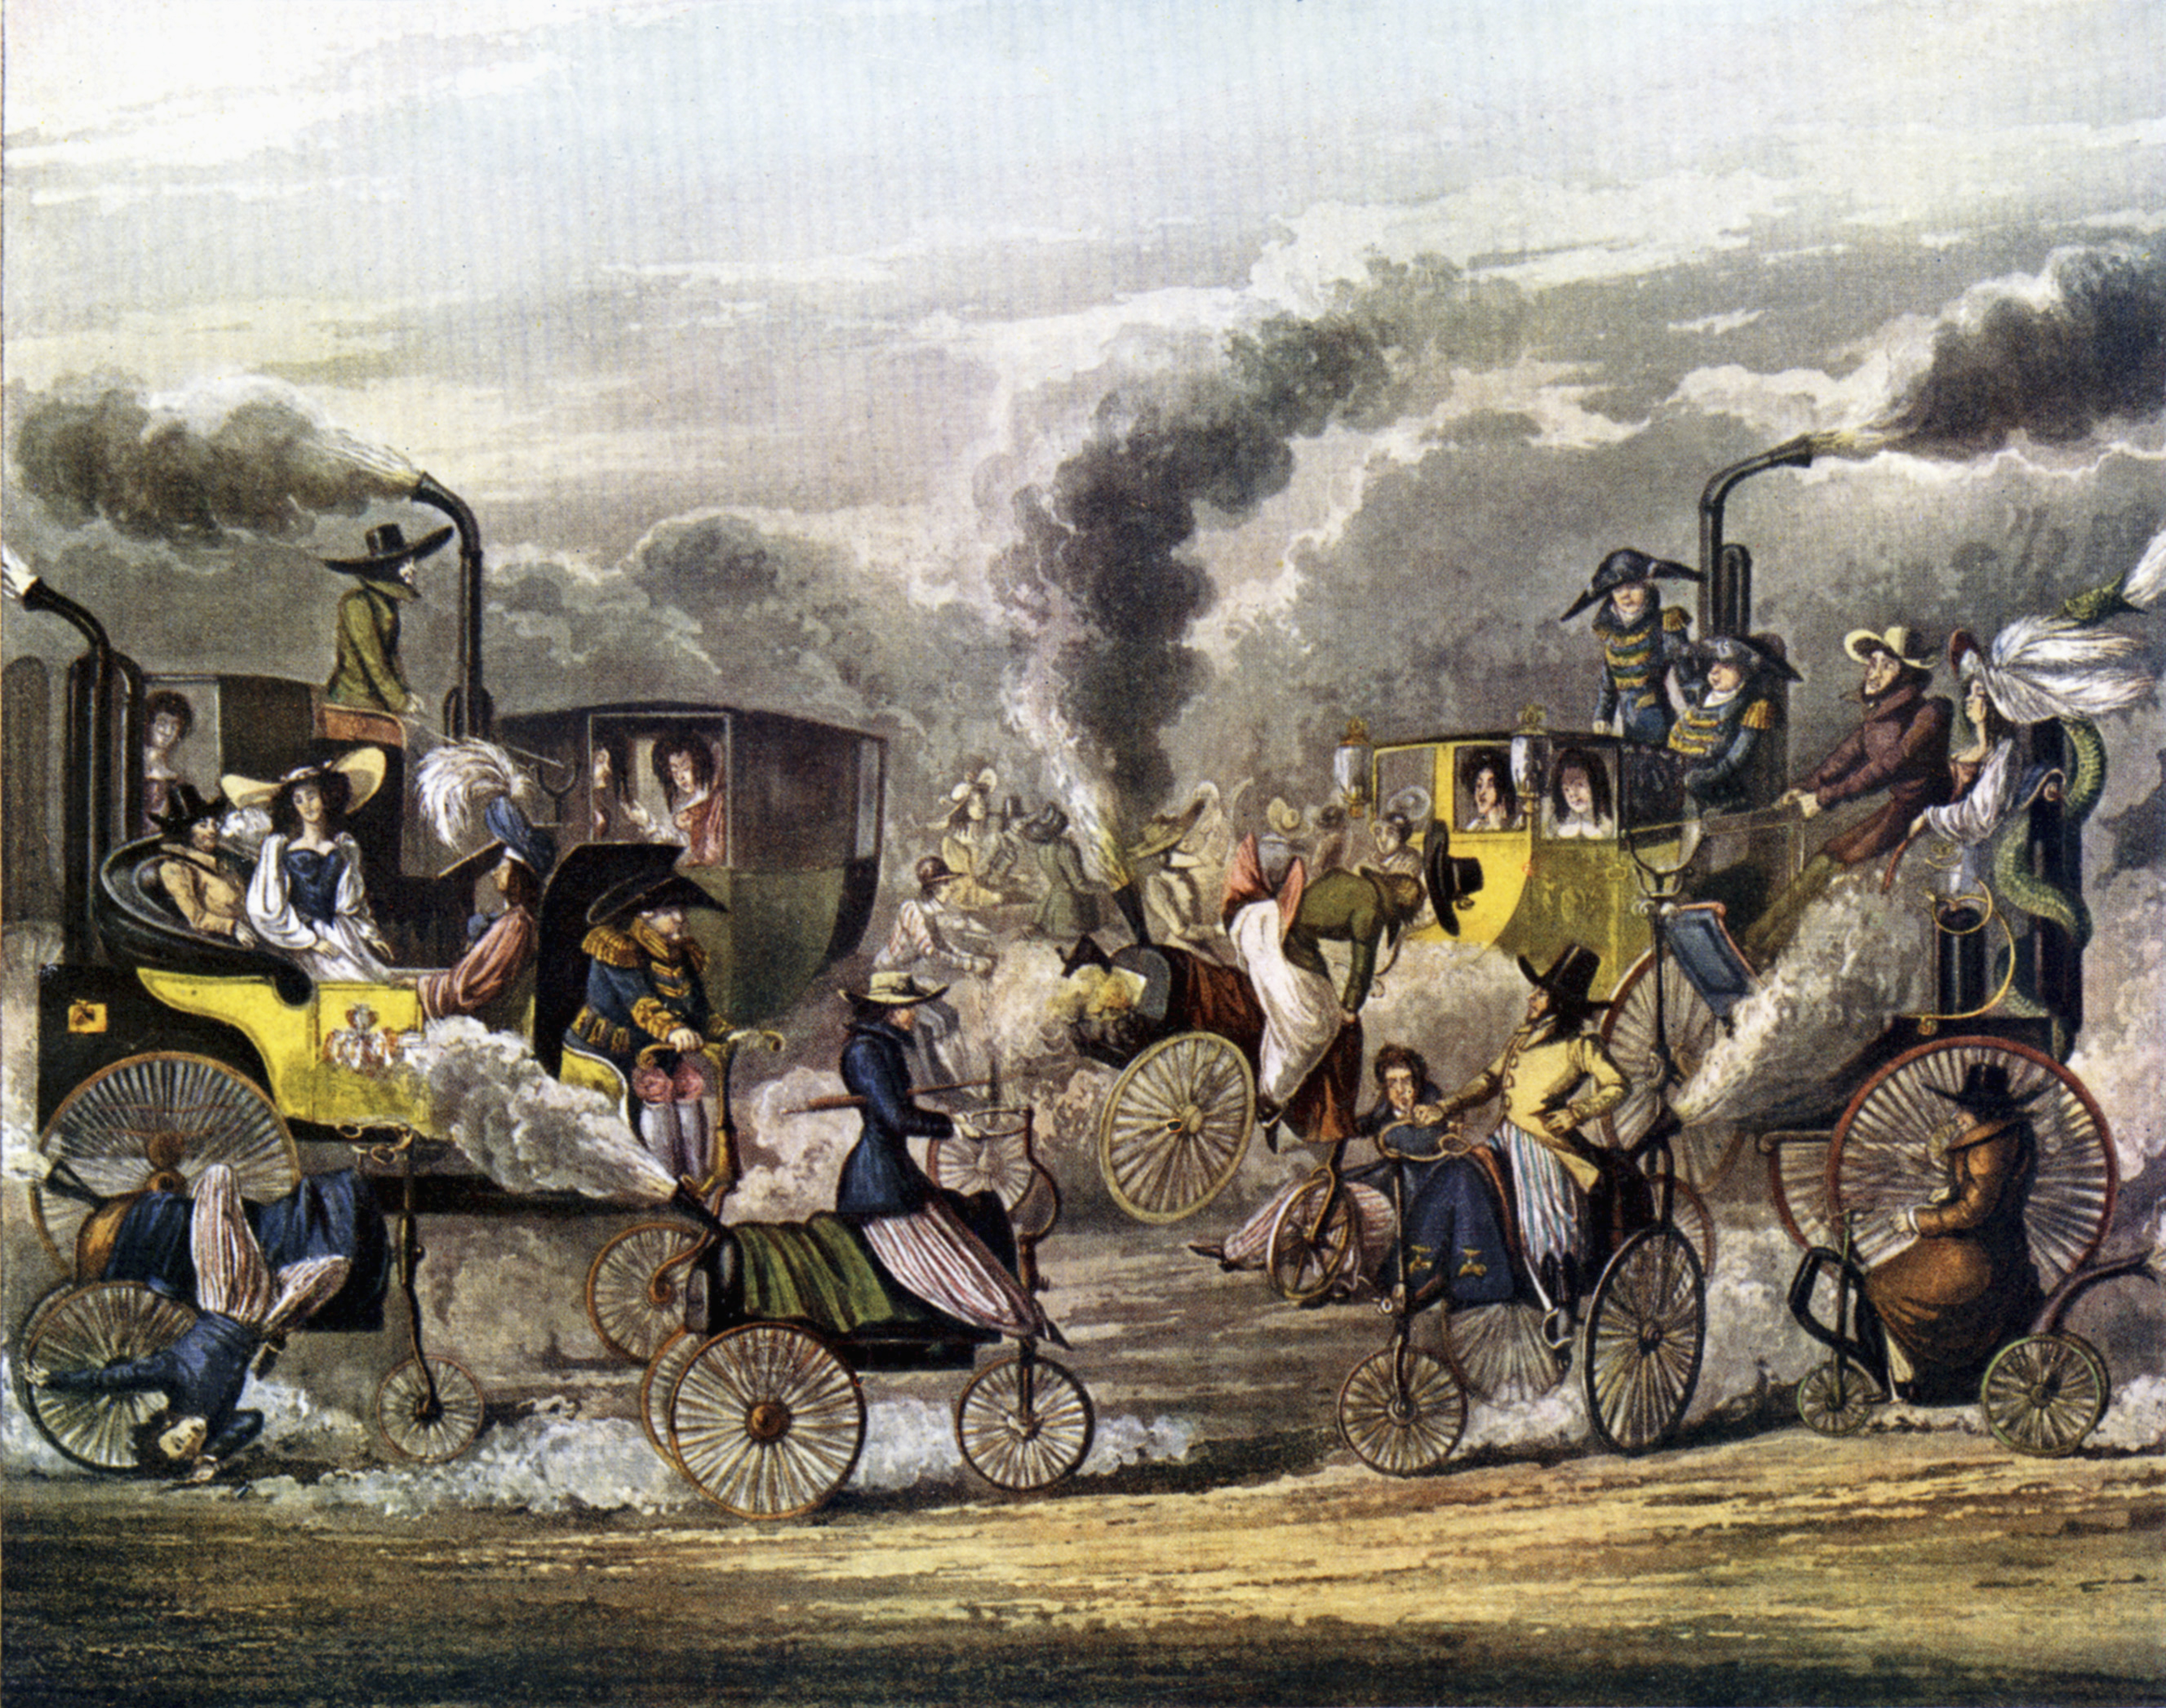 transport revolution Free essay: the transport revolution until late in the 1700's, in both europe and america, most roads were either rough tracks created by hoof and wheel or.